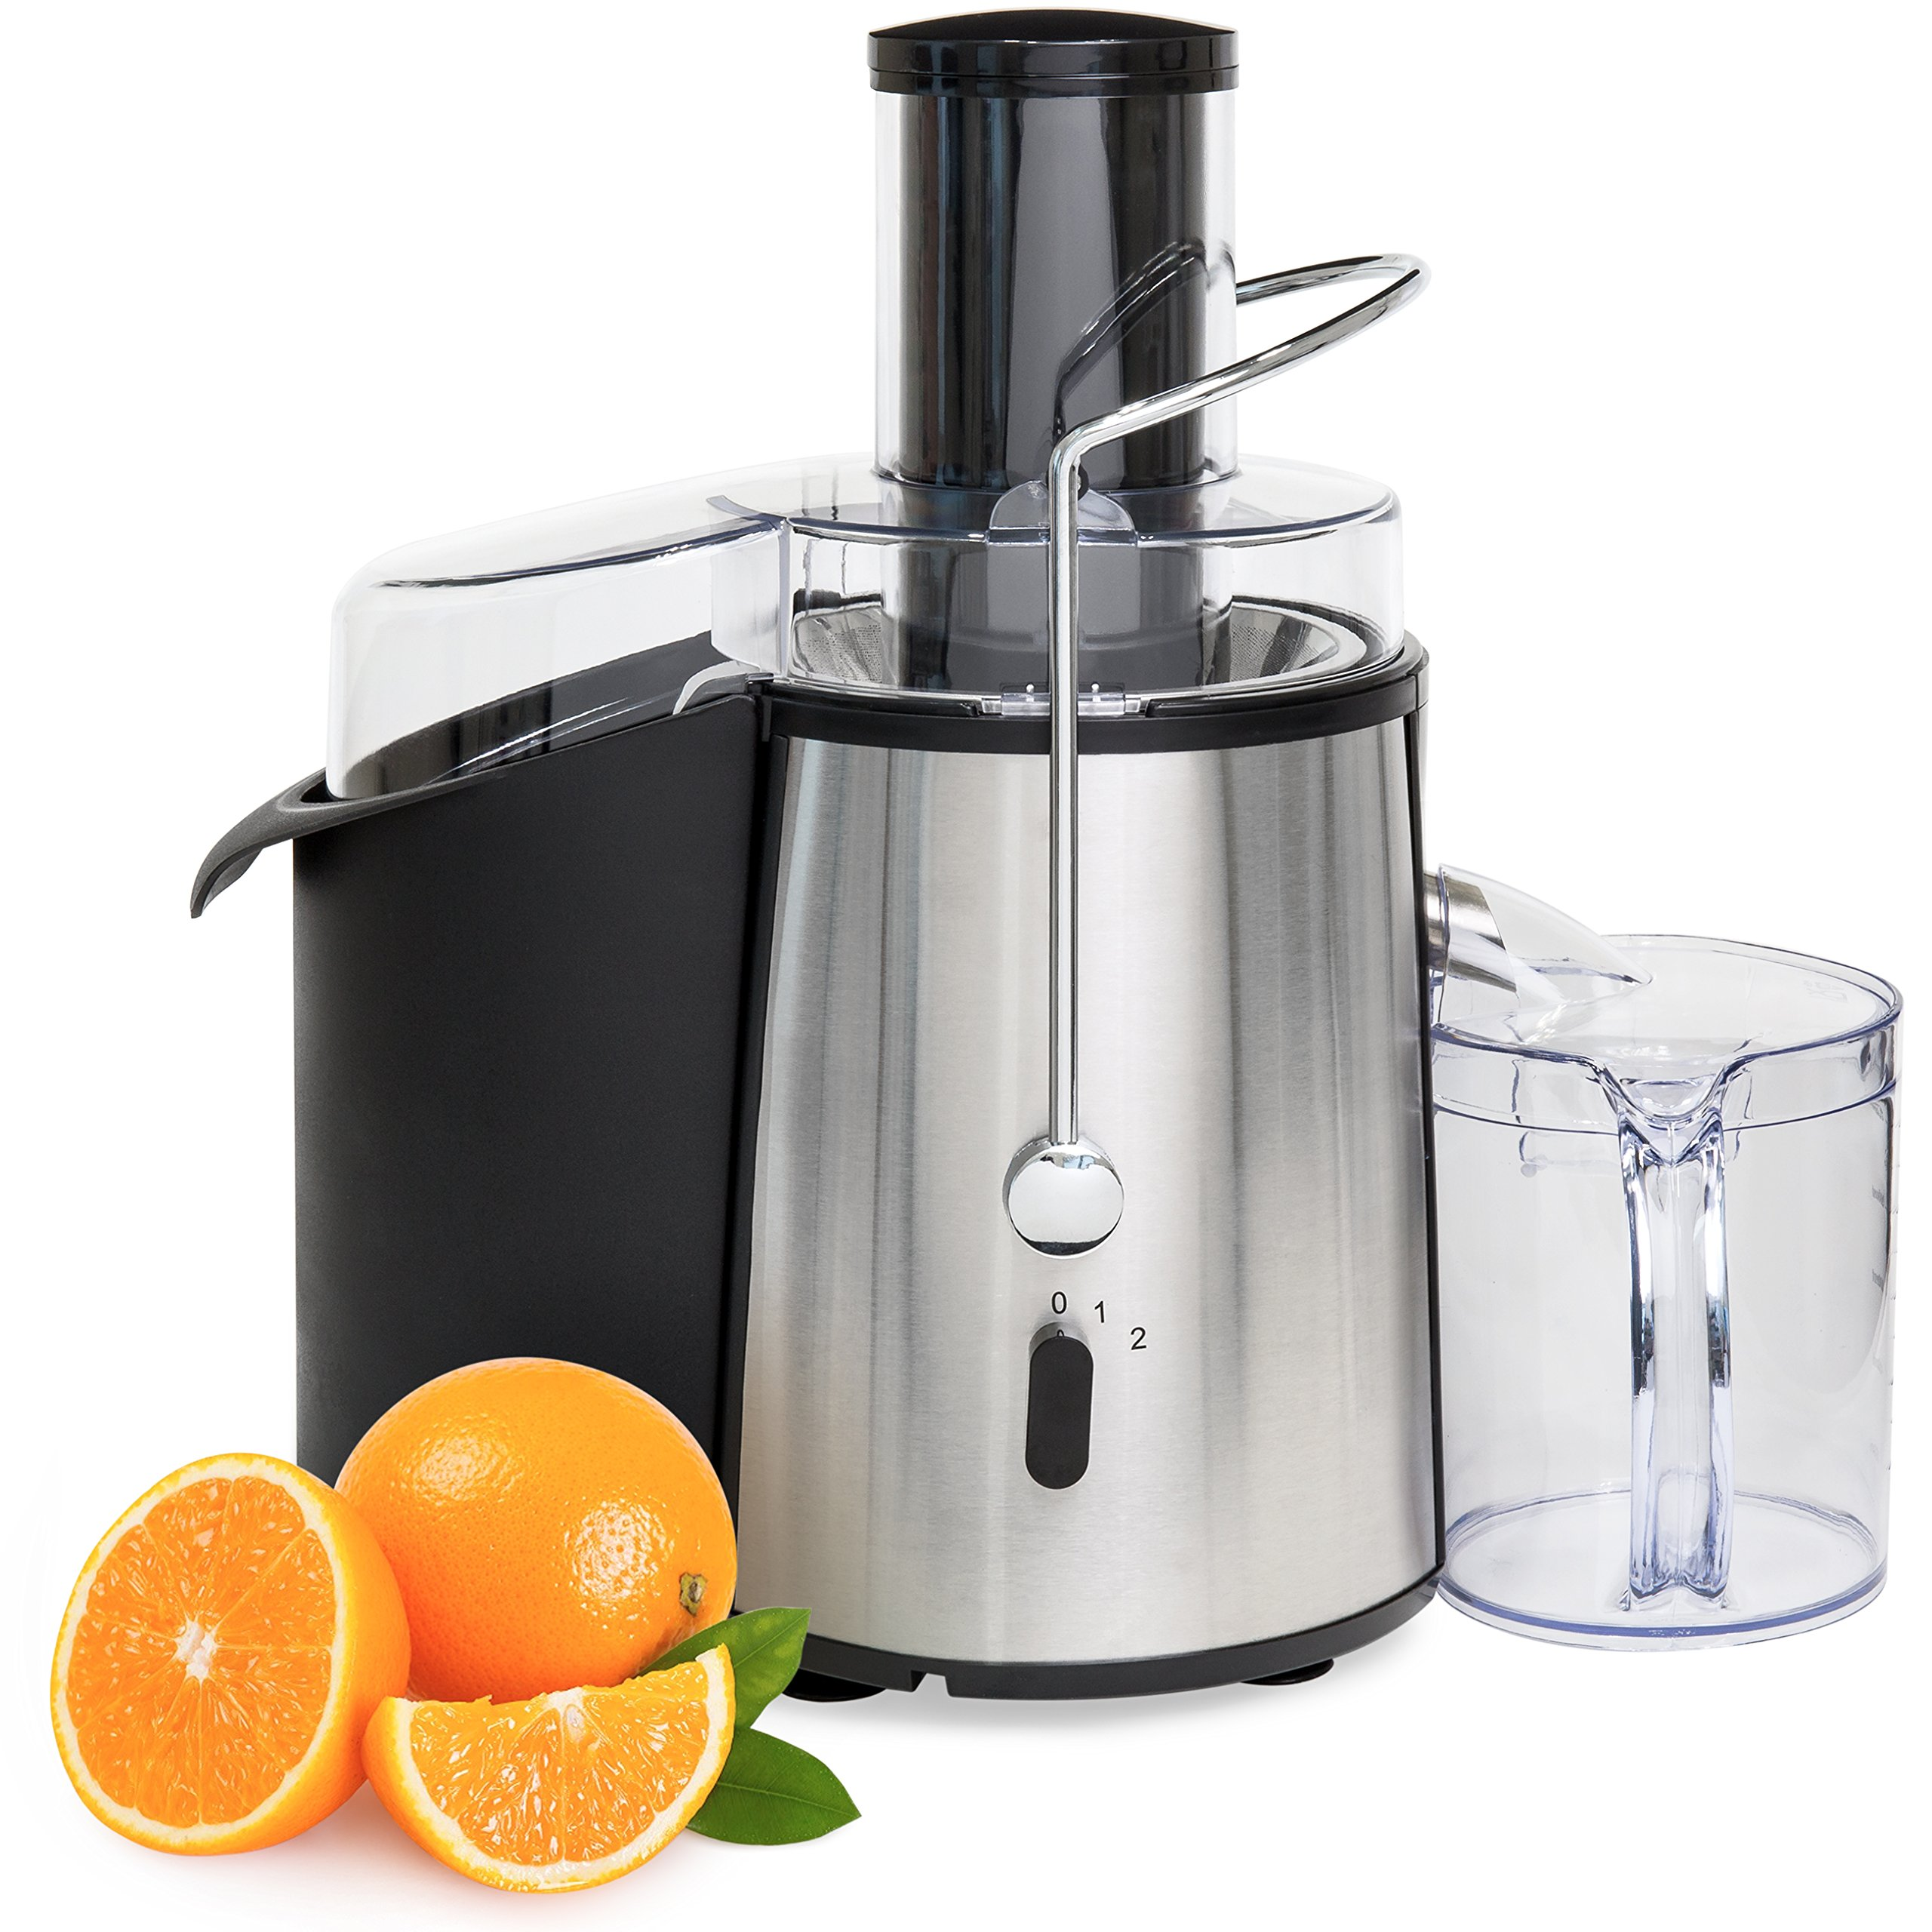 Best Choice Products 2-Speed 700-Watt Stainless Steel Fruit Vegetable Power Juicer Extractor w/Wide Chute - Silver